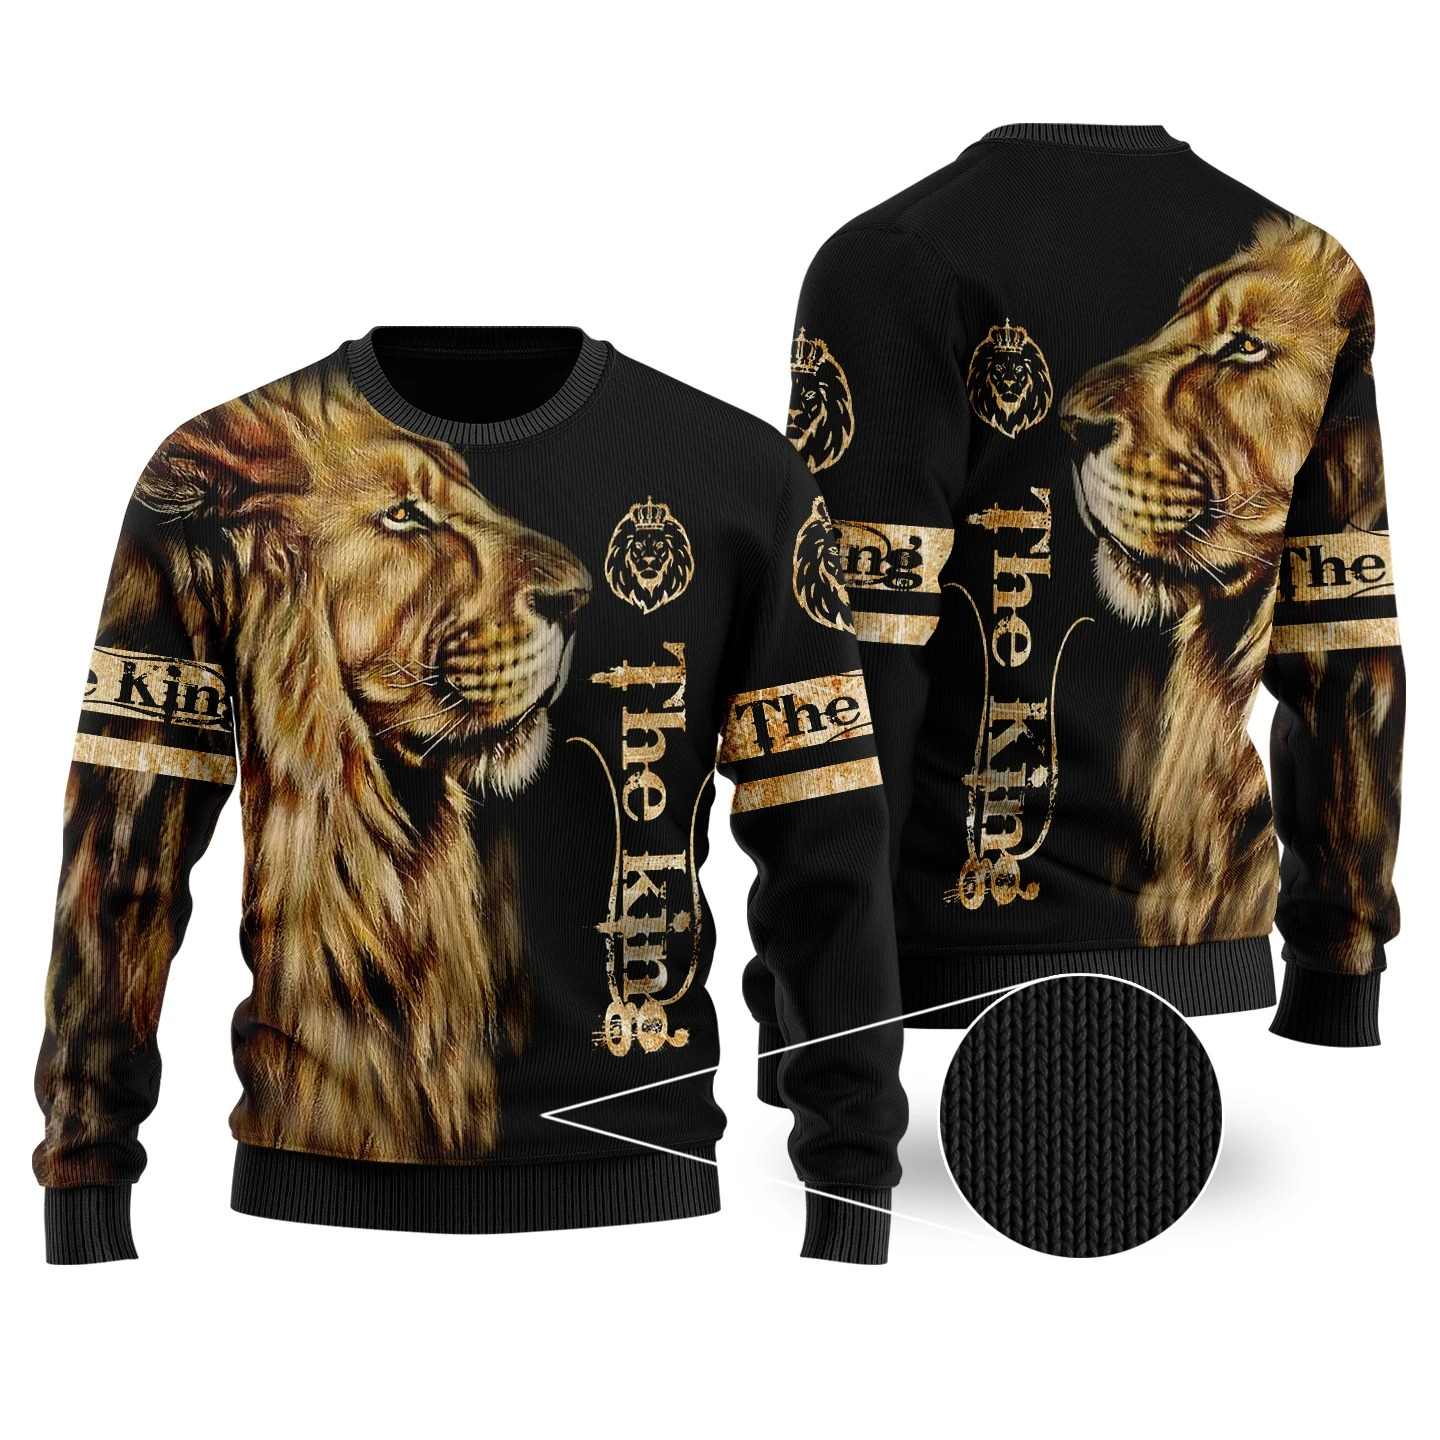 King lion 3d all over printed unisex hoodie and shirt 3